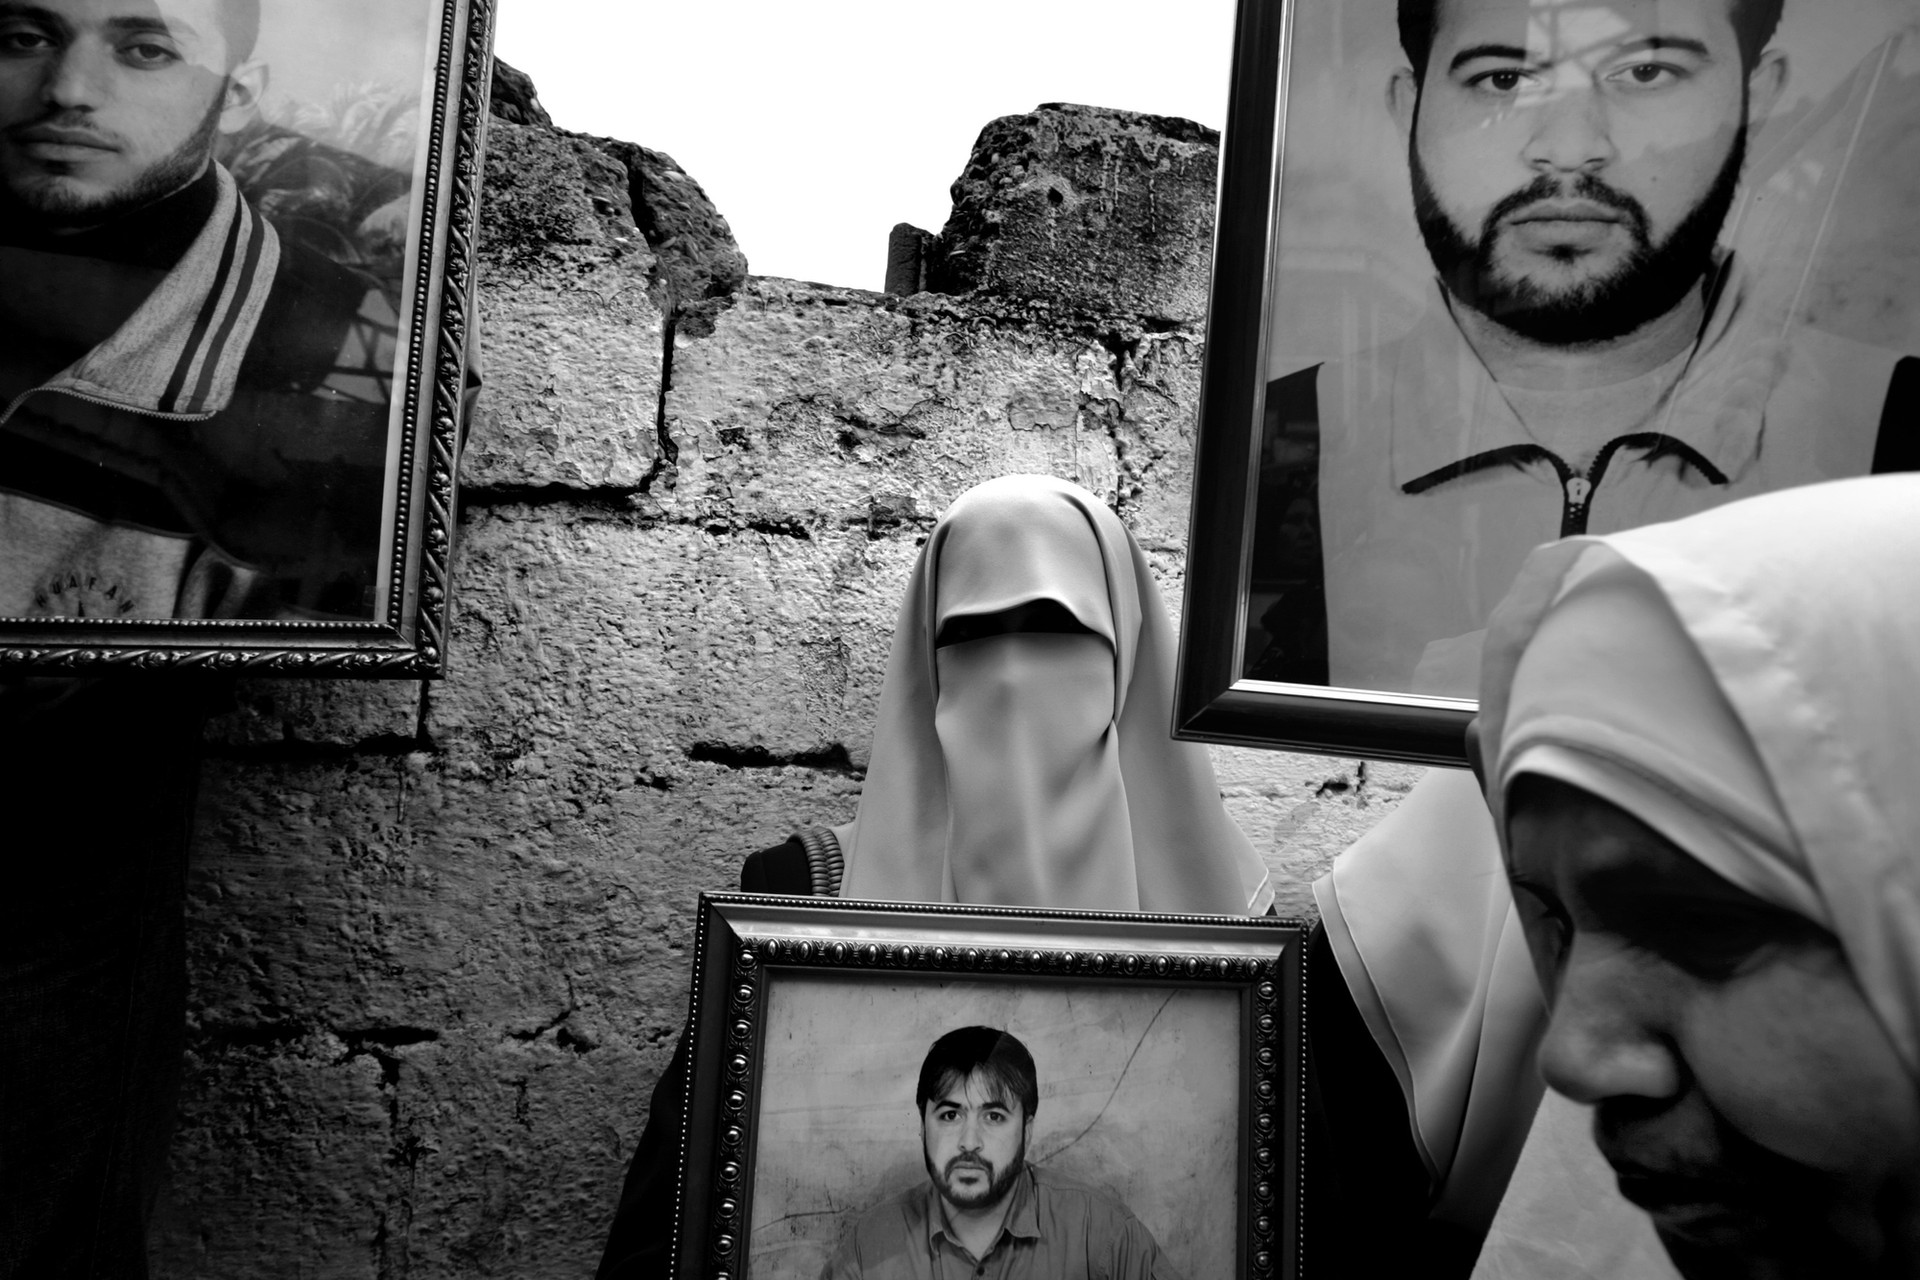 Palestinian women hold framed photographs of their loved ones during a demonstration in Gaza City demanding the release of Palestinian prisoners being held in Israeli jails. Some 8,000 Palestinians are in Israeli jails, leaving thousands of virtual widows.